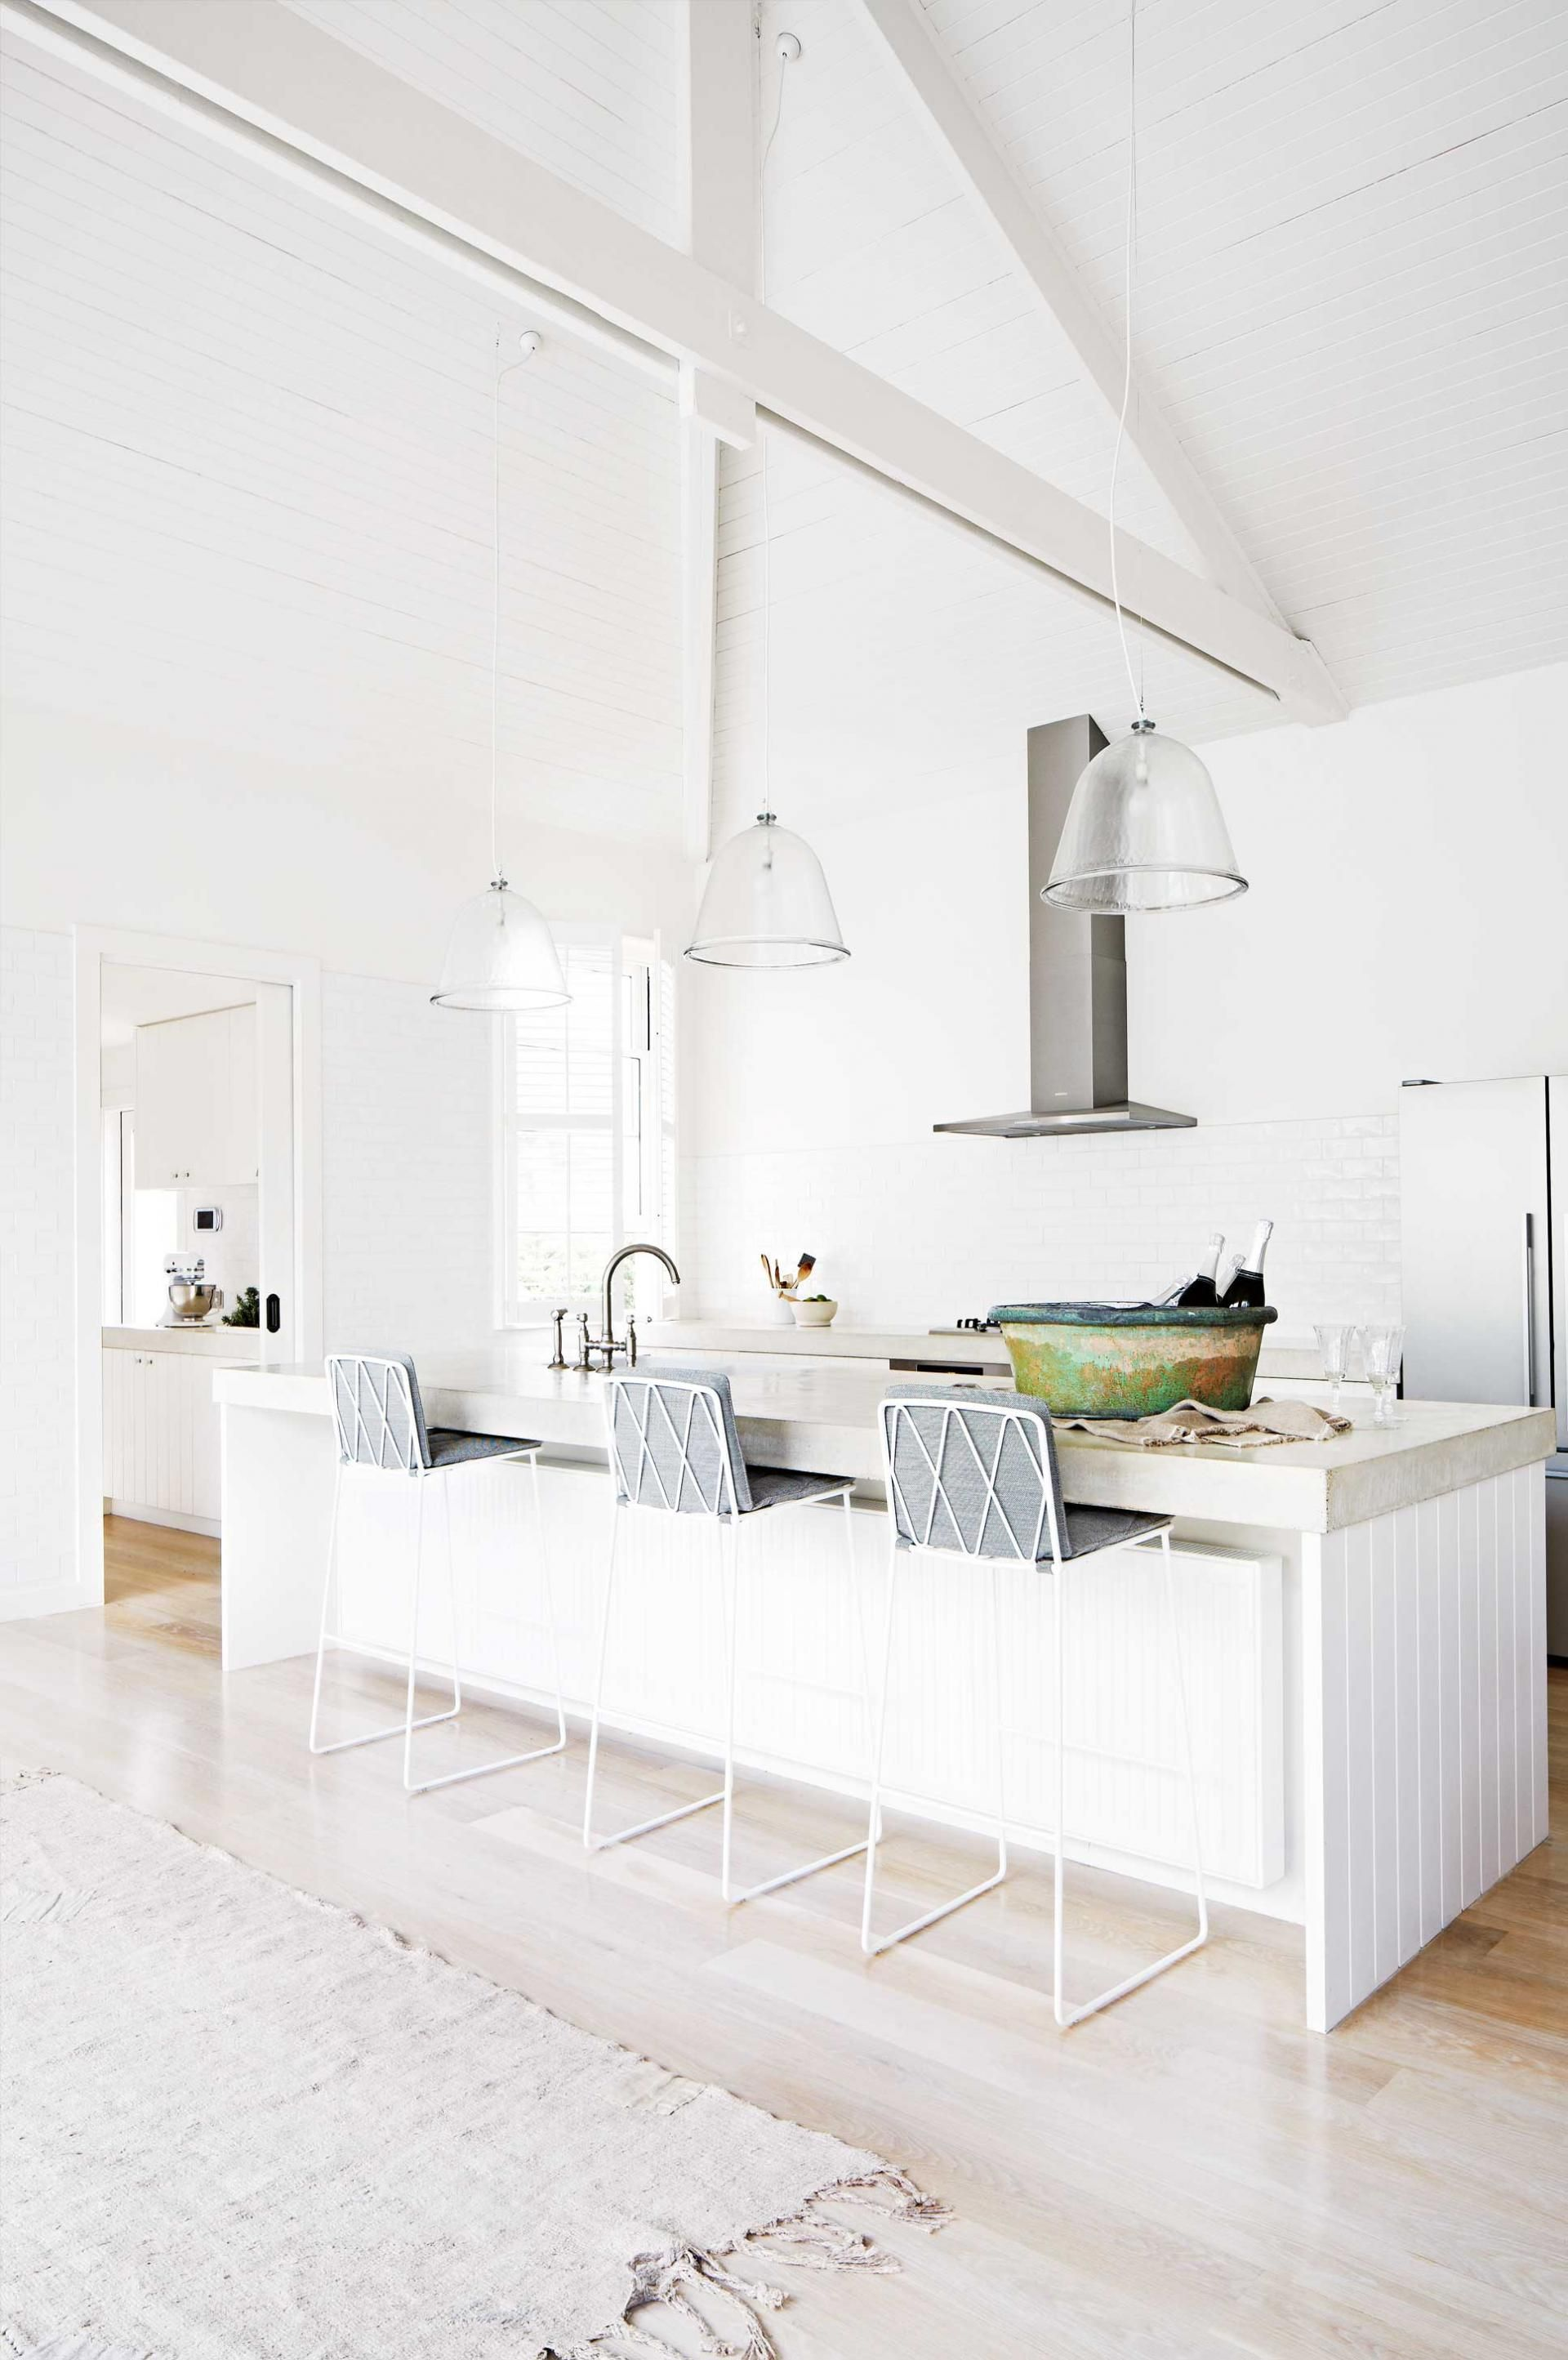 Dachboden über küchenideen the best white kitchens styling by julia green photography by